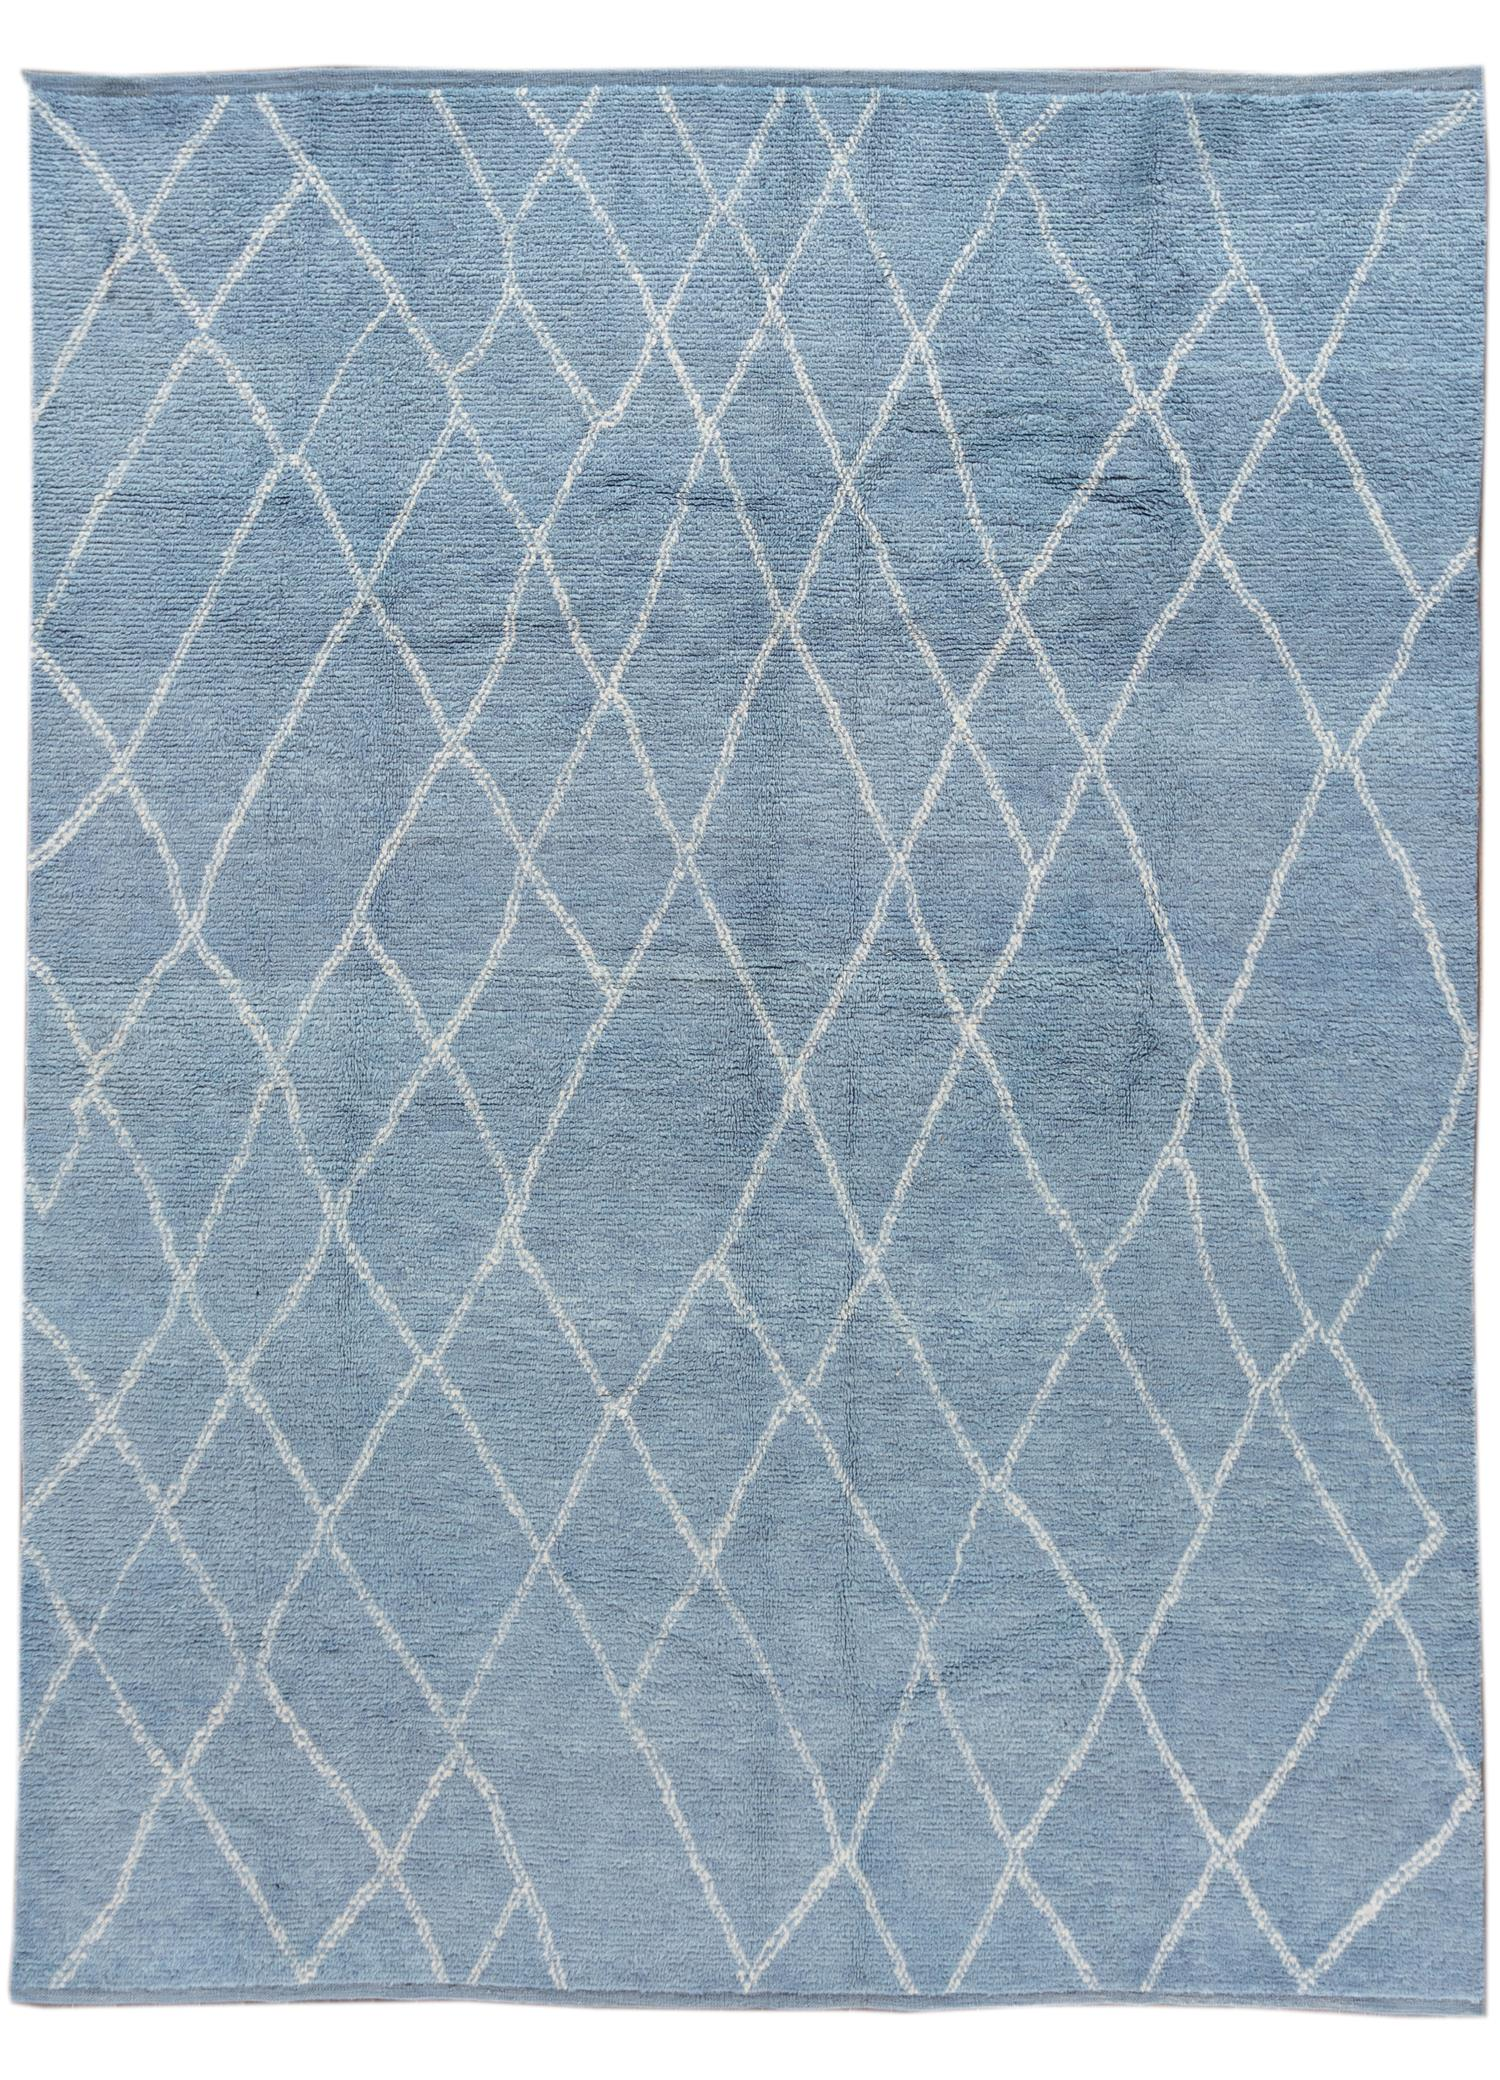 21st Century Modern Moroccan-style Rug, 9' x 12'